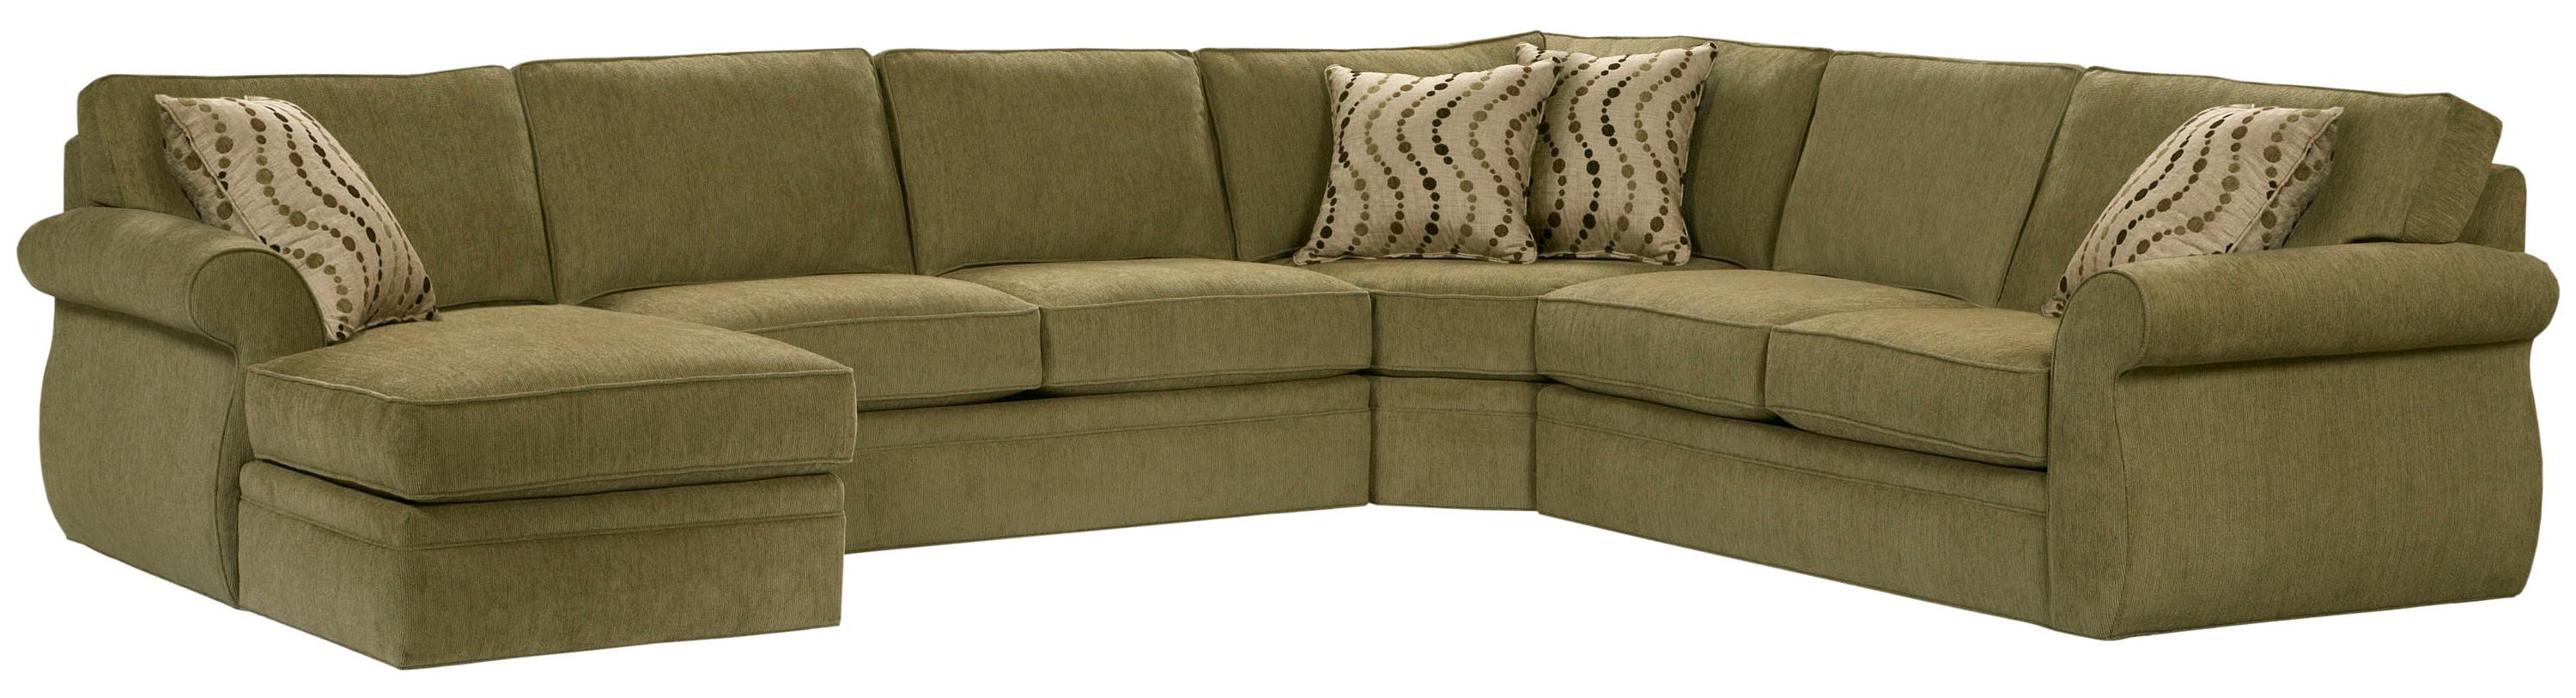 Broyhill Furniture Veronica Chaise Sectional Sofa AHFA Sofa